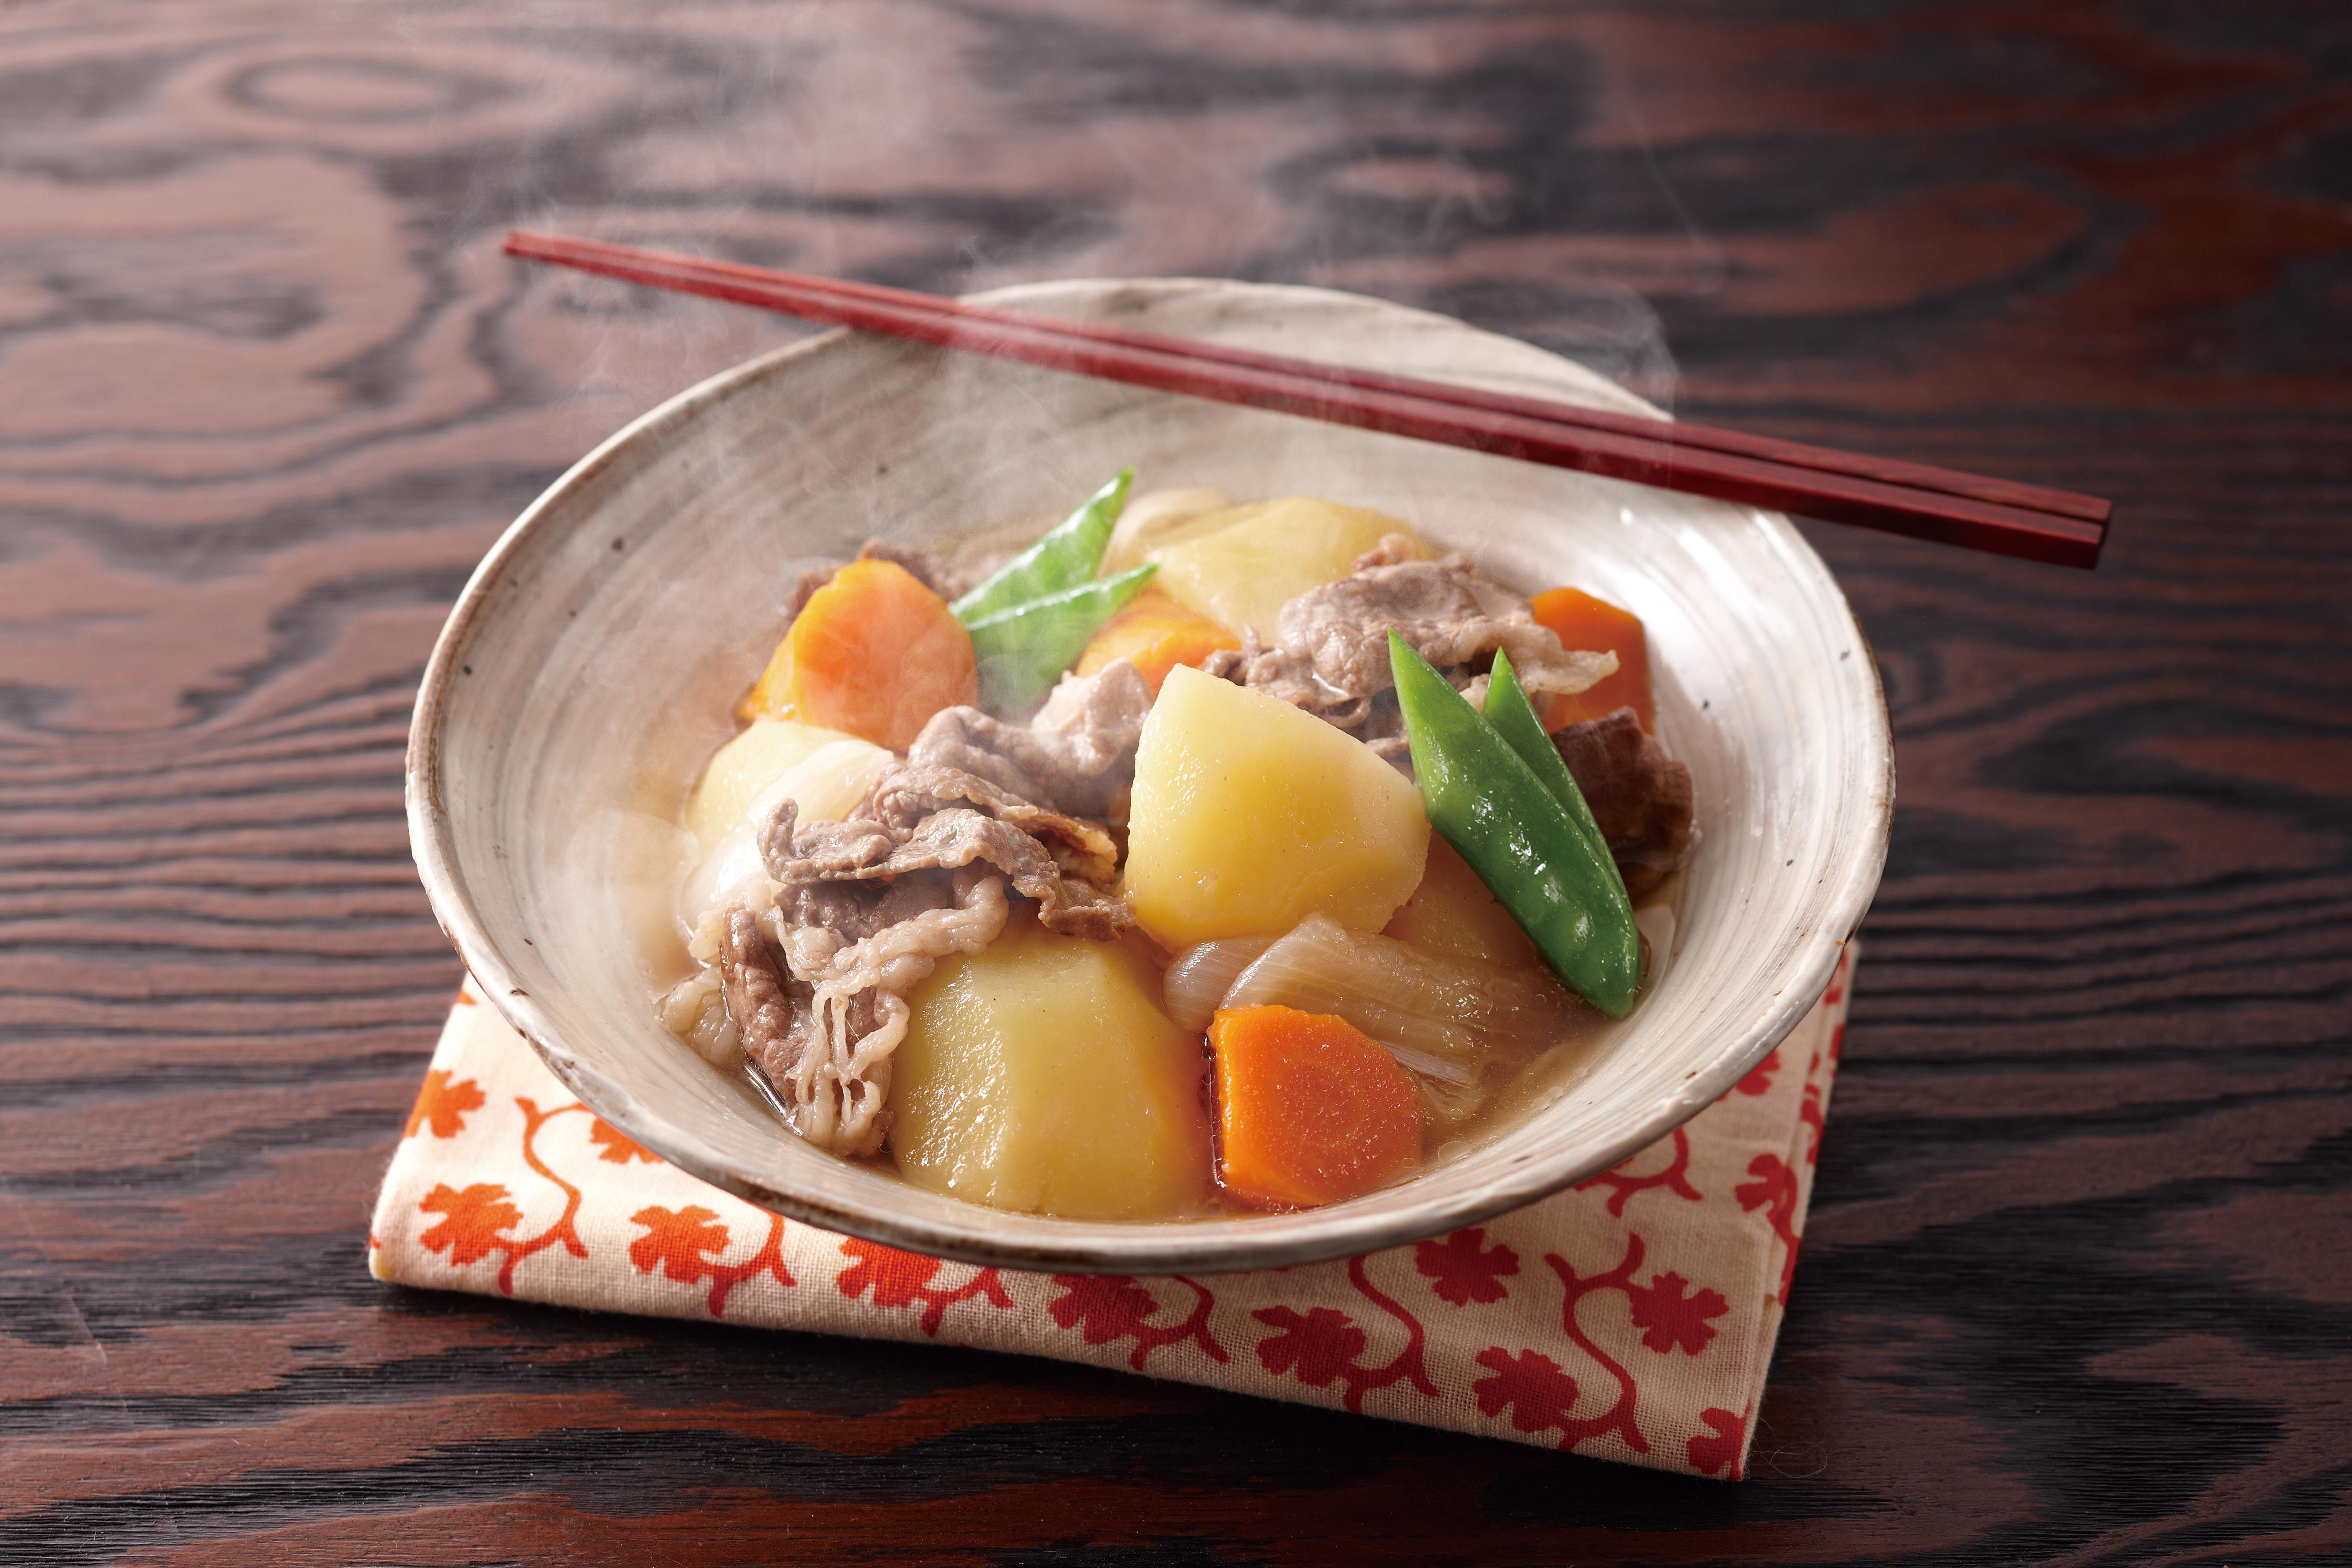 Nikujaga Japanese Beef And Potatoes 肉じゃが Tiger Corporation U S A Rice Cookers Small Kitchen Electronics Recipe In 2020 Recipes Easy Japanese Recipes Beef And Potatoes